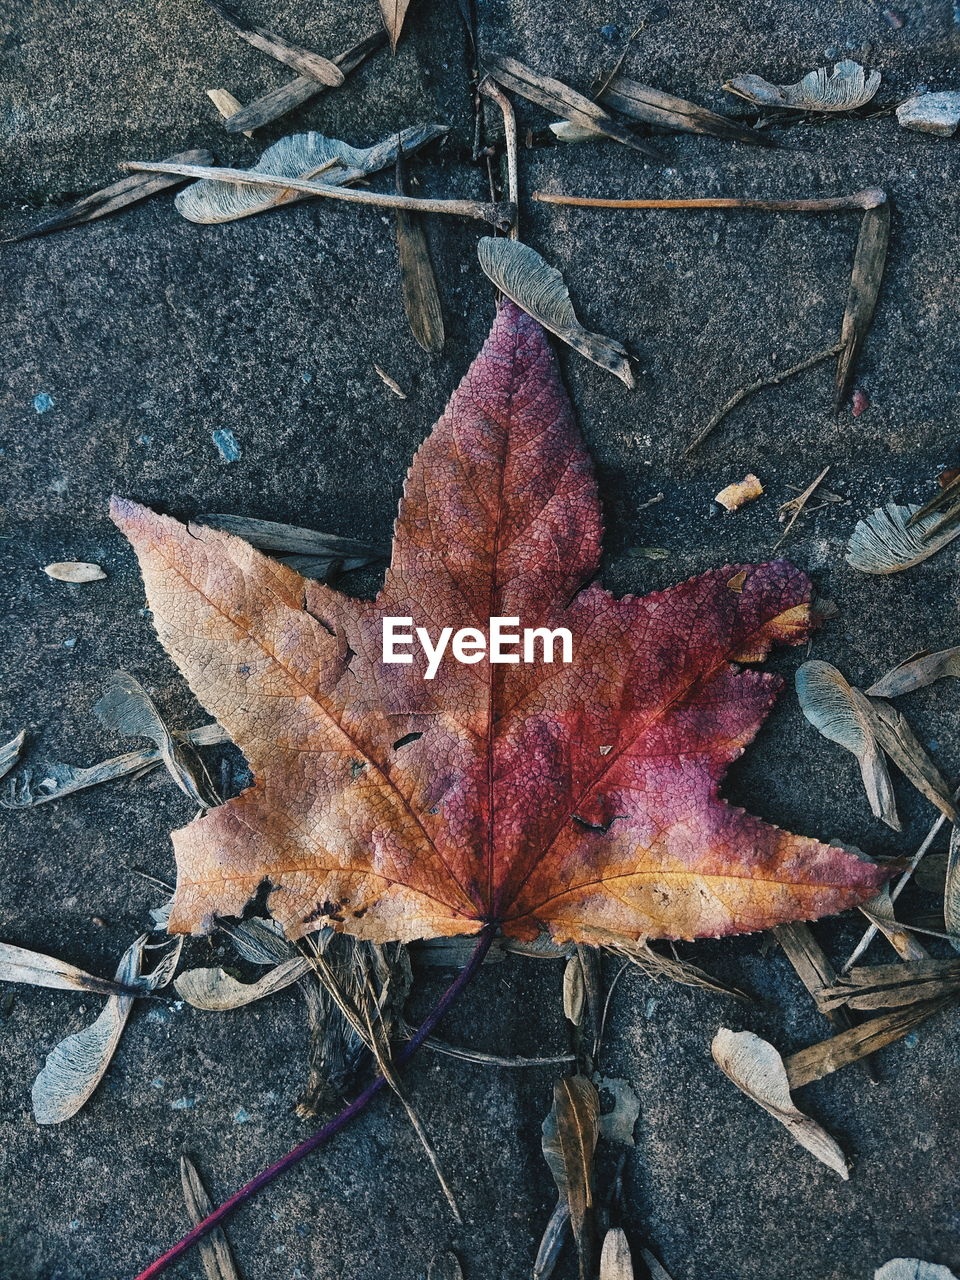 leaf, plant part, dry, autumn, change, close-up, high angle view, falling, no people, nature, day, directly above, maple leaf, outdoors, leaf vein, plant, vulnerability, fragility, leaves, still life, natural condition, fall